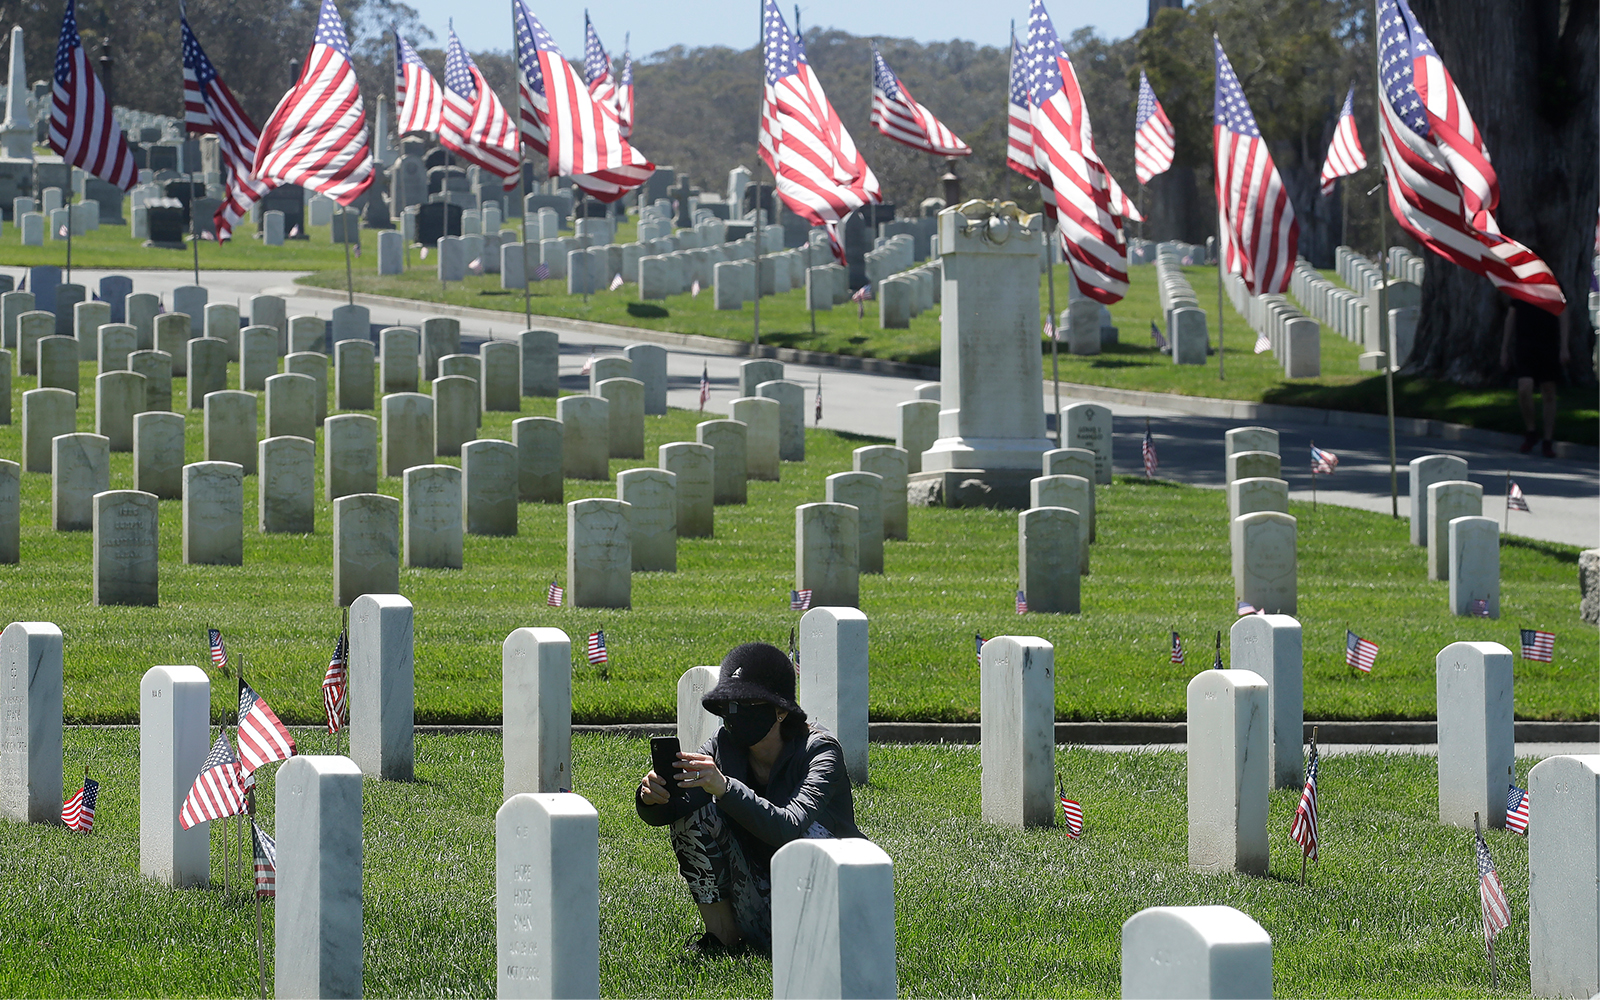 San Francisco National Cemetery the day before Memorial Day in San Francisco, California, May 24, 2020. (AP/Jeff Chiu)